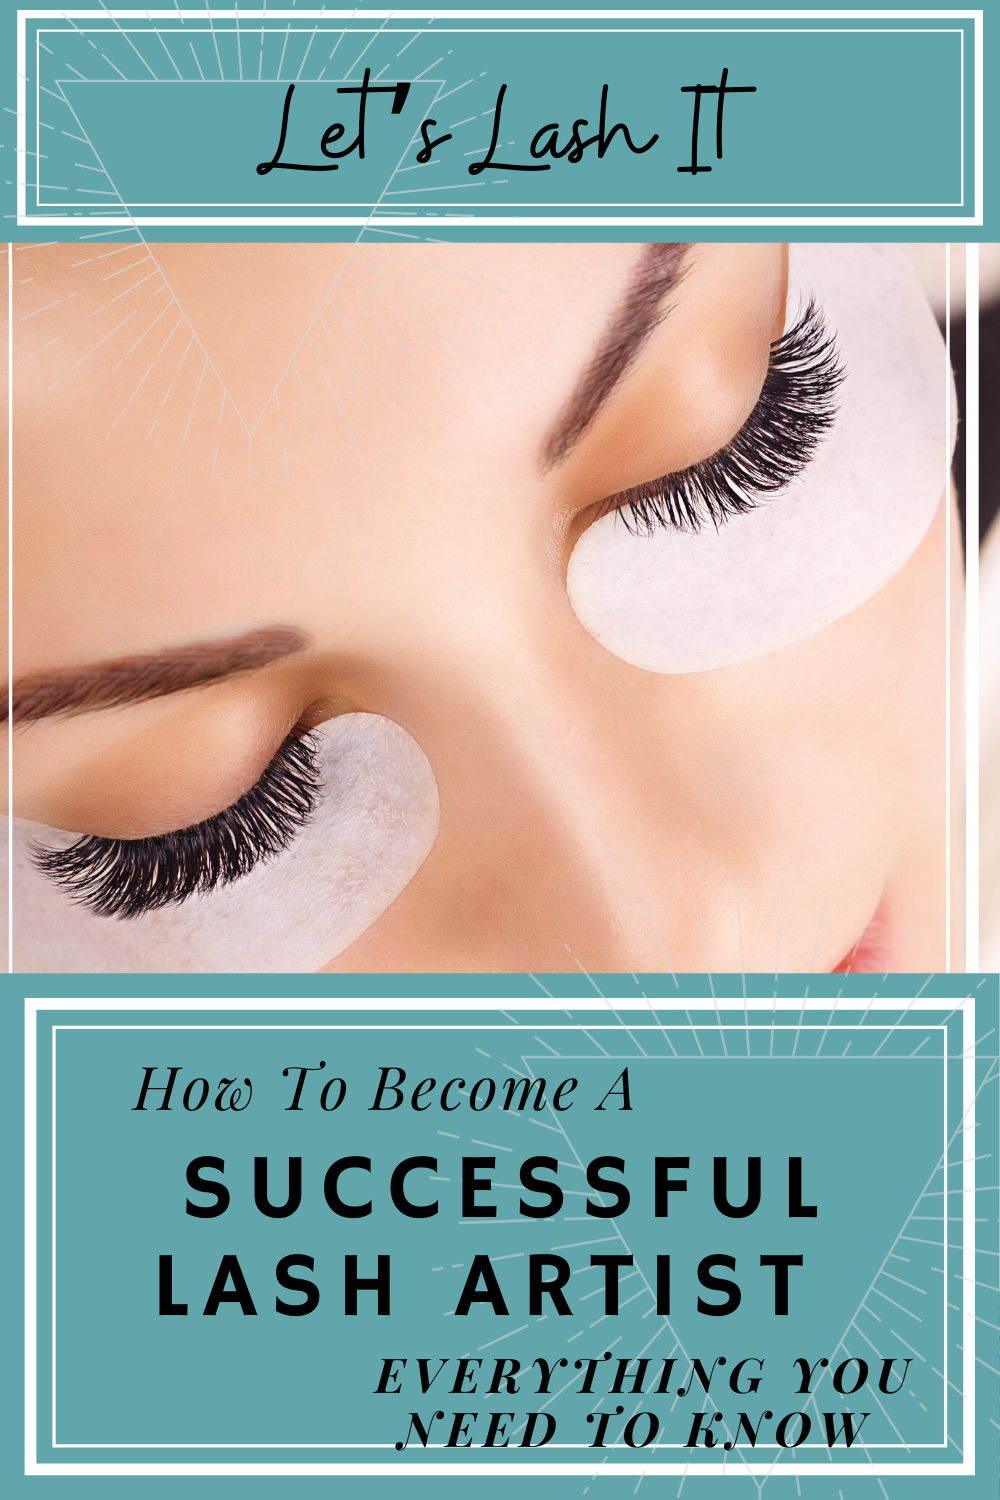 How To Start A Lash Business In 2020 Lash Artist Lashes How To Become